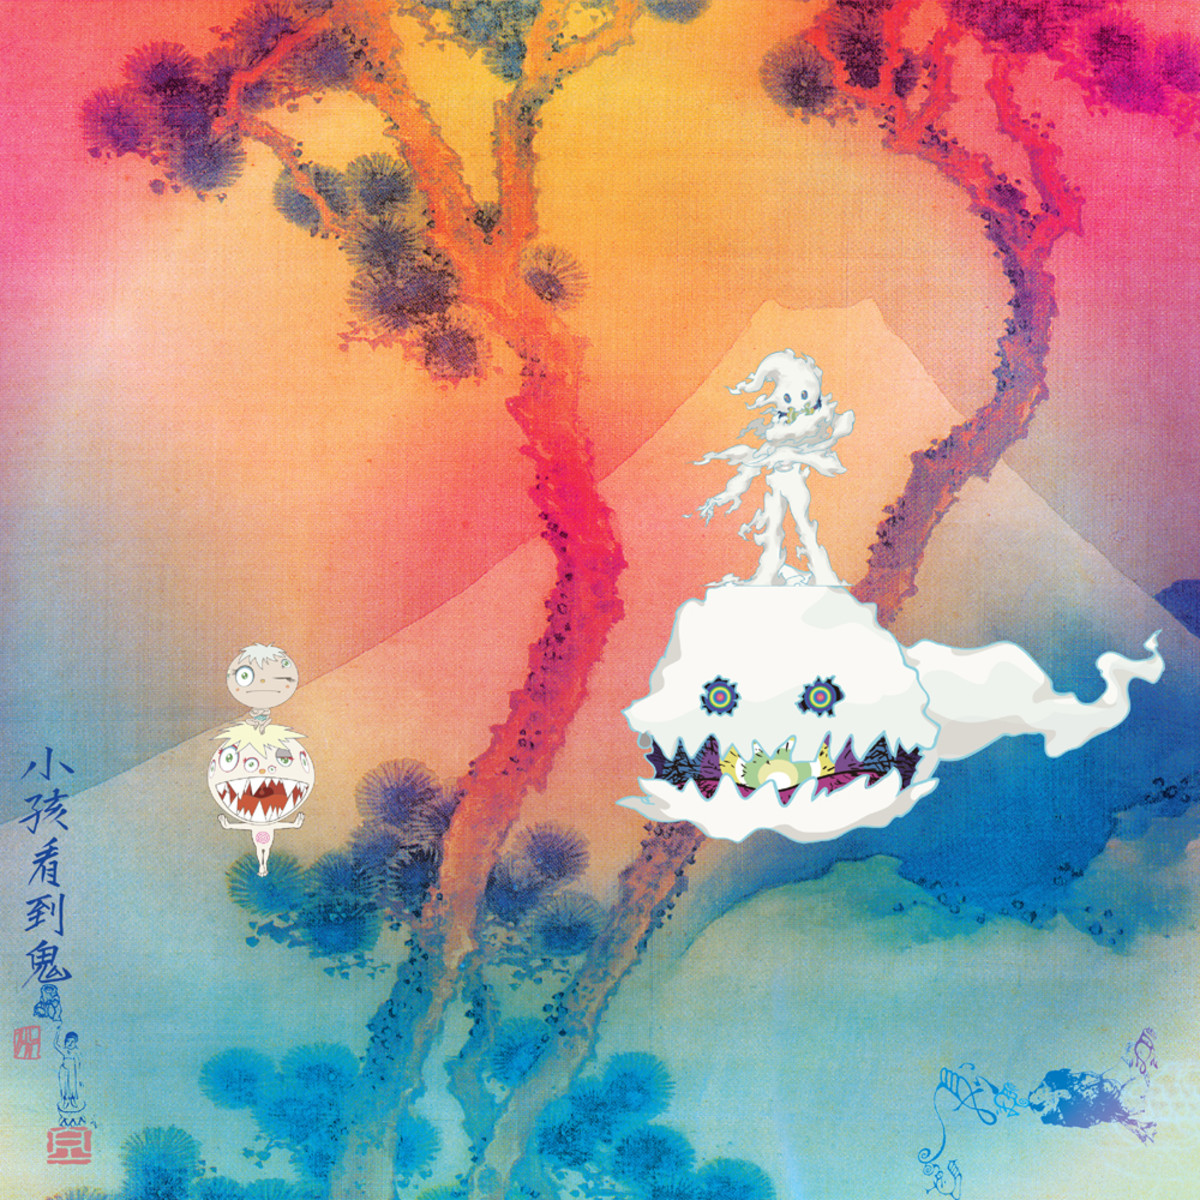 kids-see-ghosts-kids-see-ghosts-album-art